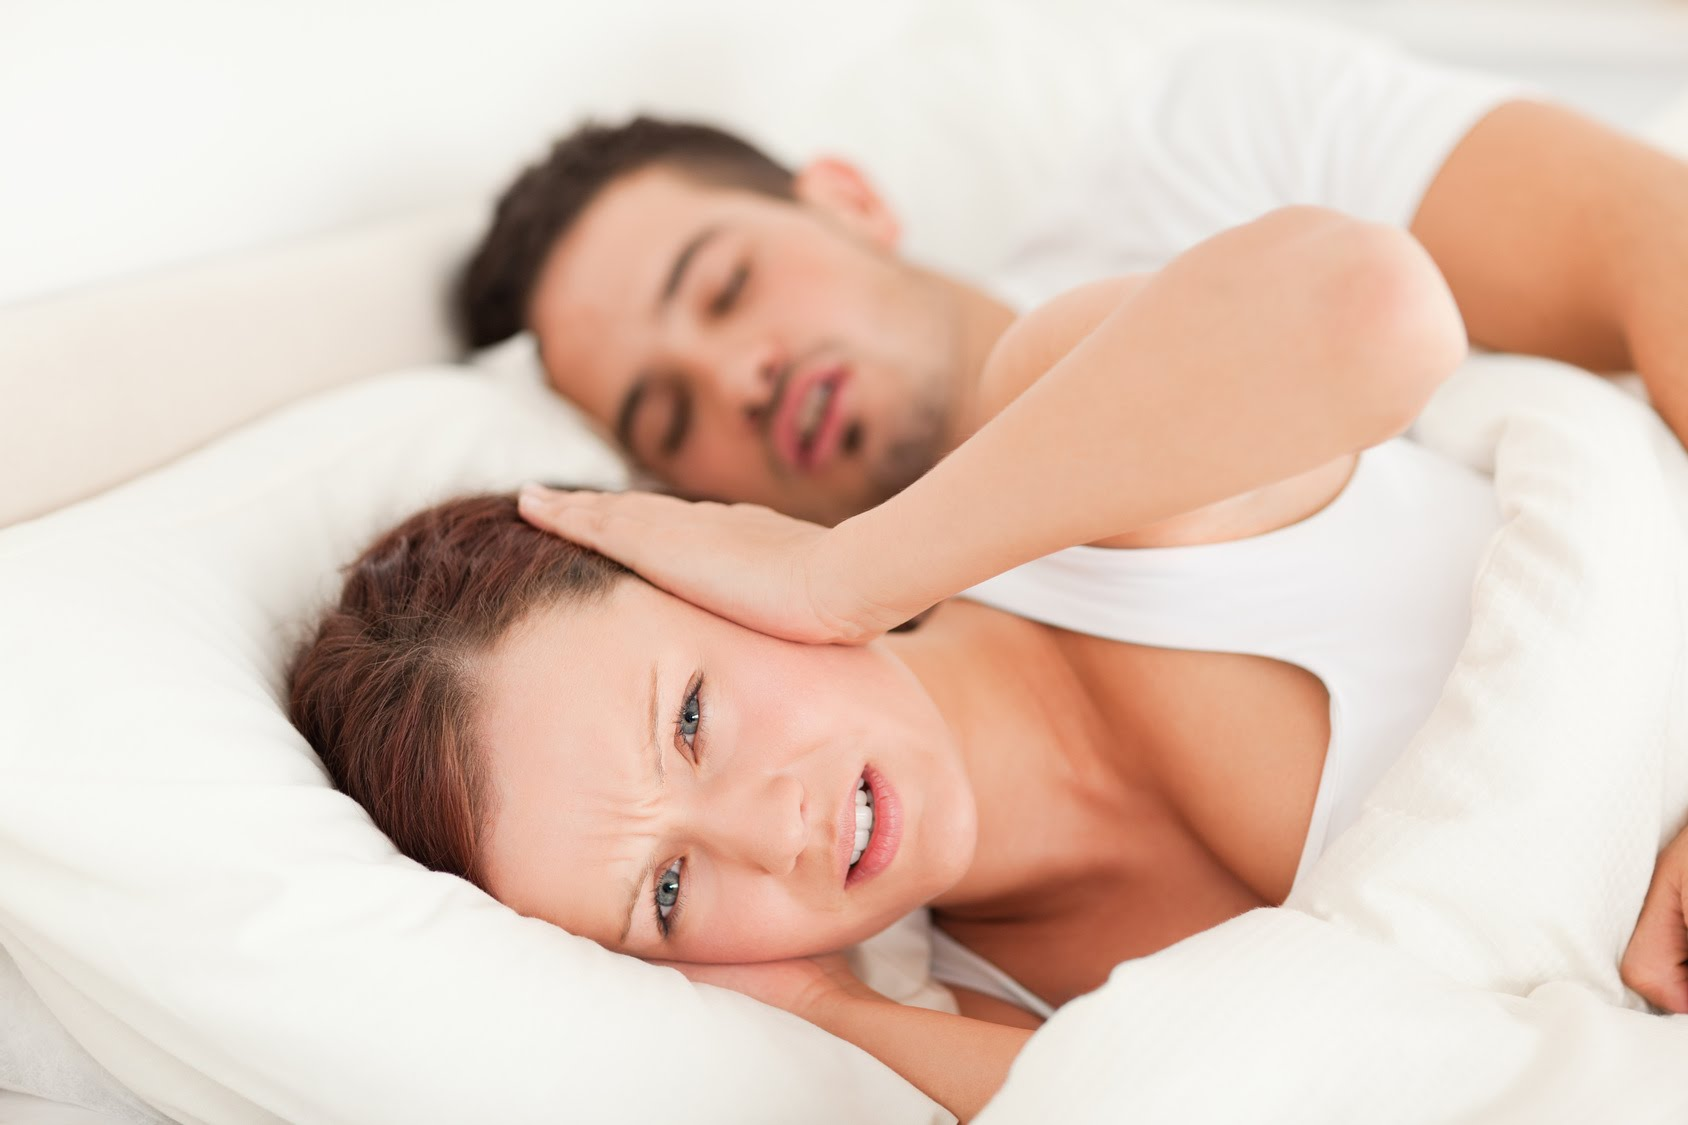 Stop Snoring Mouthpiece Reviews Consumer Reports